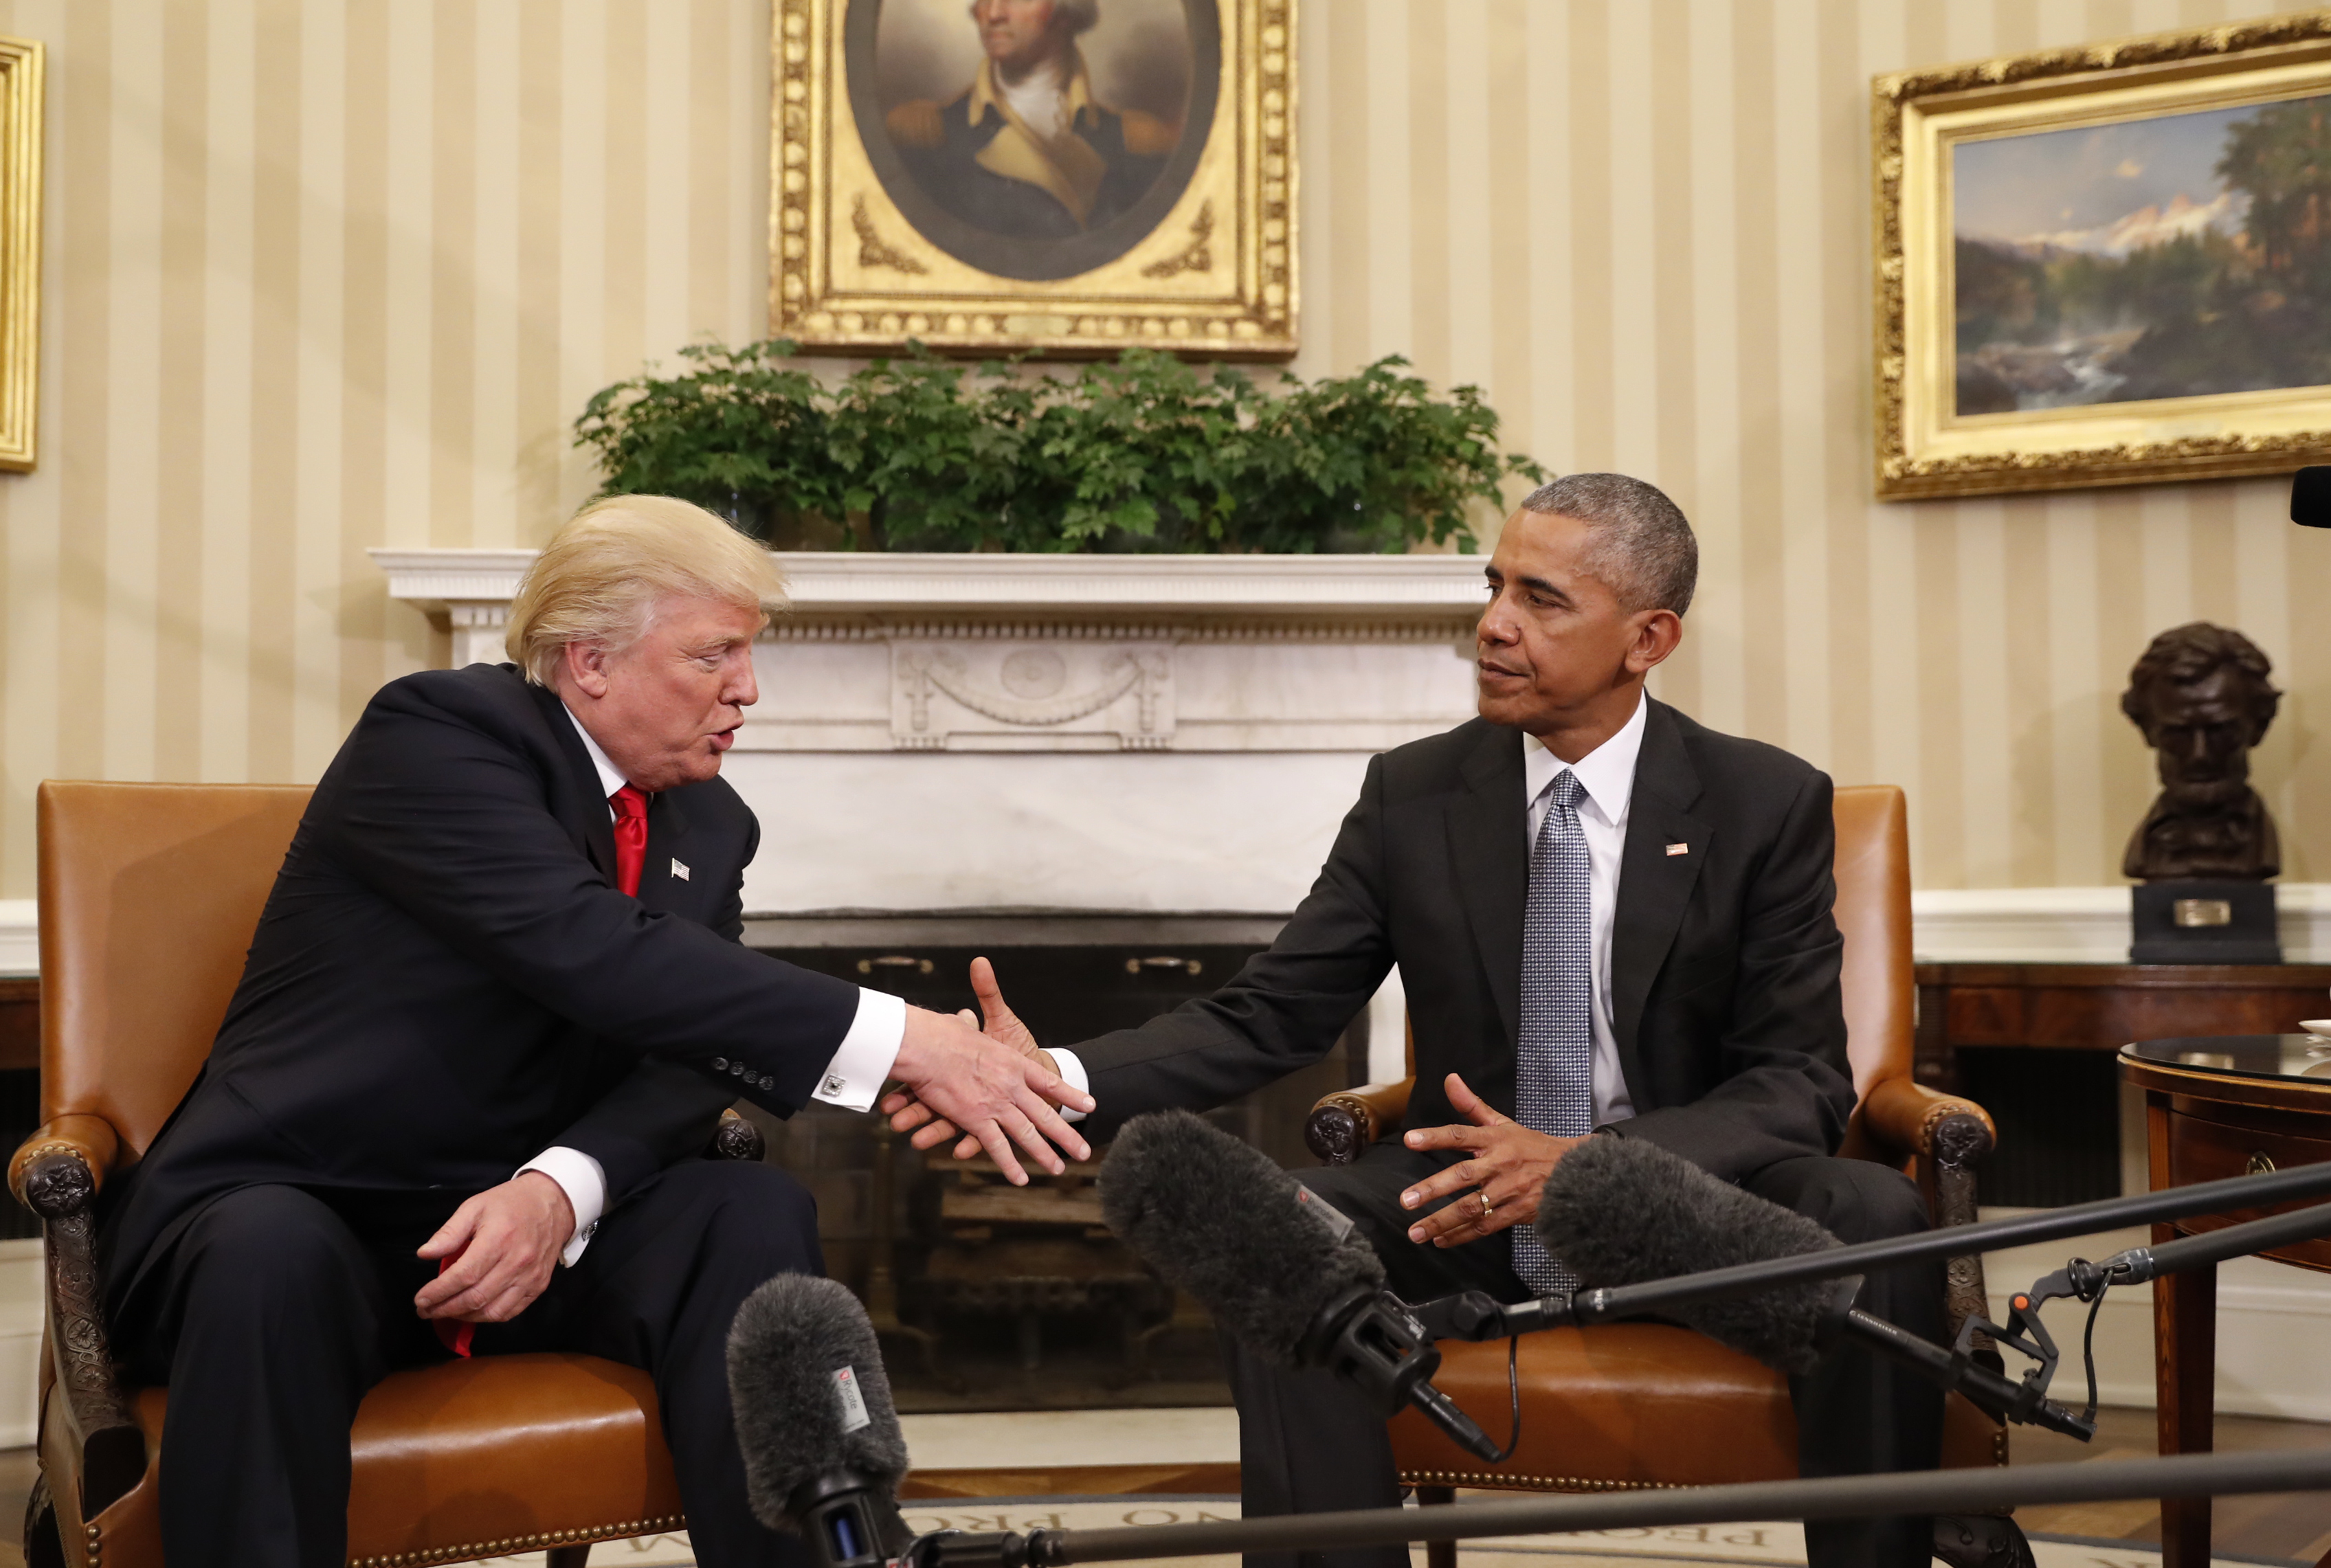 president in oval office. President Barack Obama Shakes Hands With President-elect Donald Trump In The Oval Office Of N